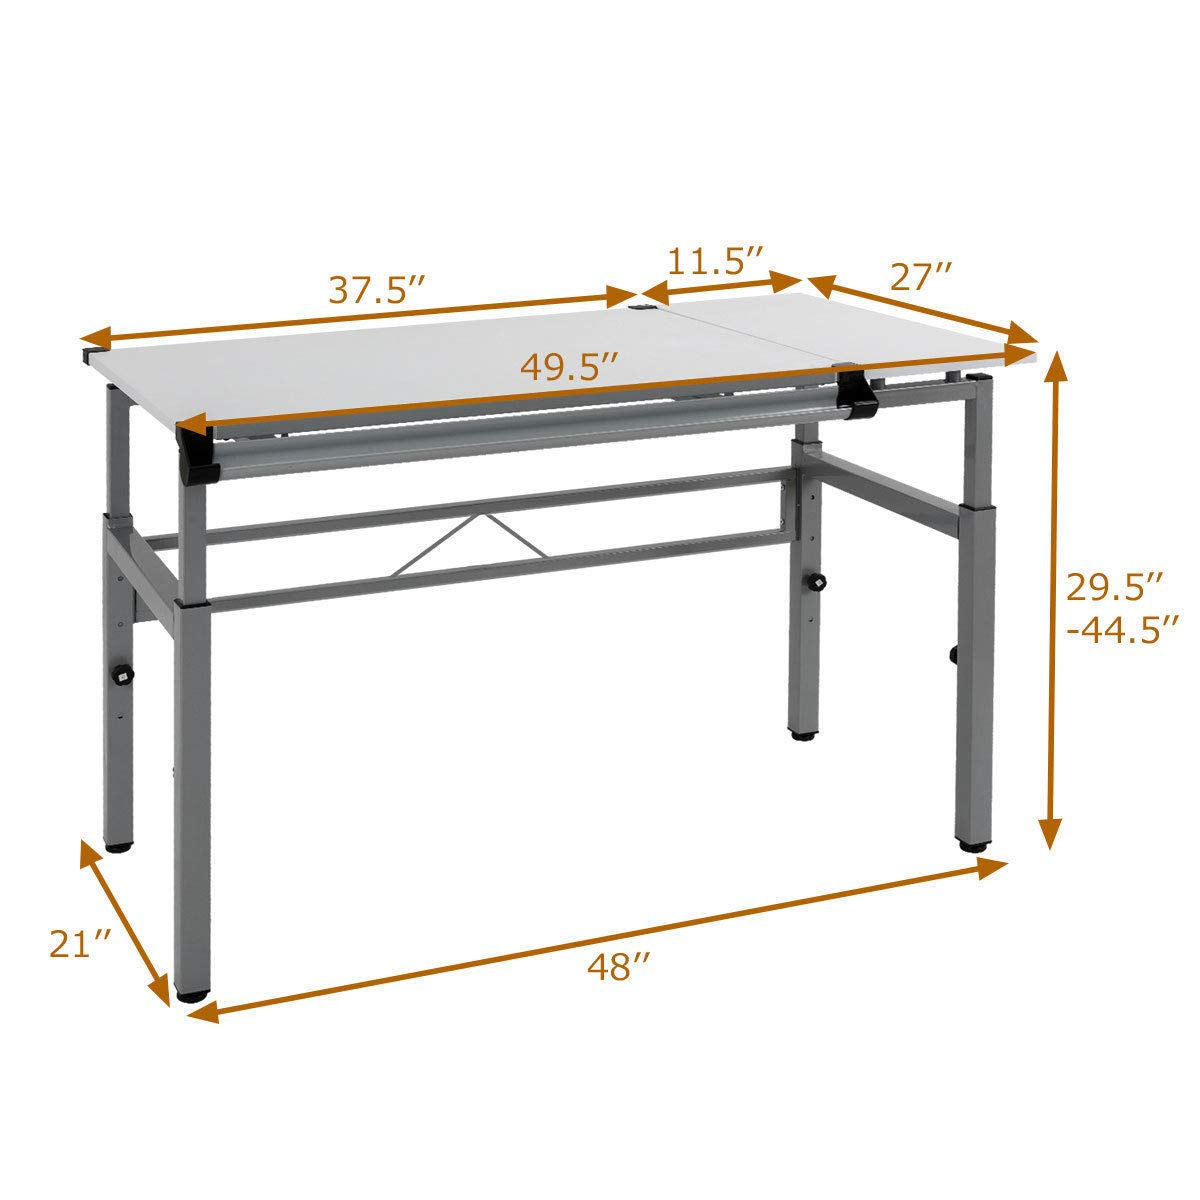 Seleq Adjustable Steel Frame Drawing Desk Drafting Table by Seleq (Image #2)